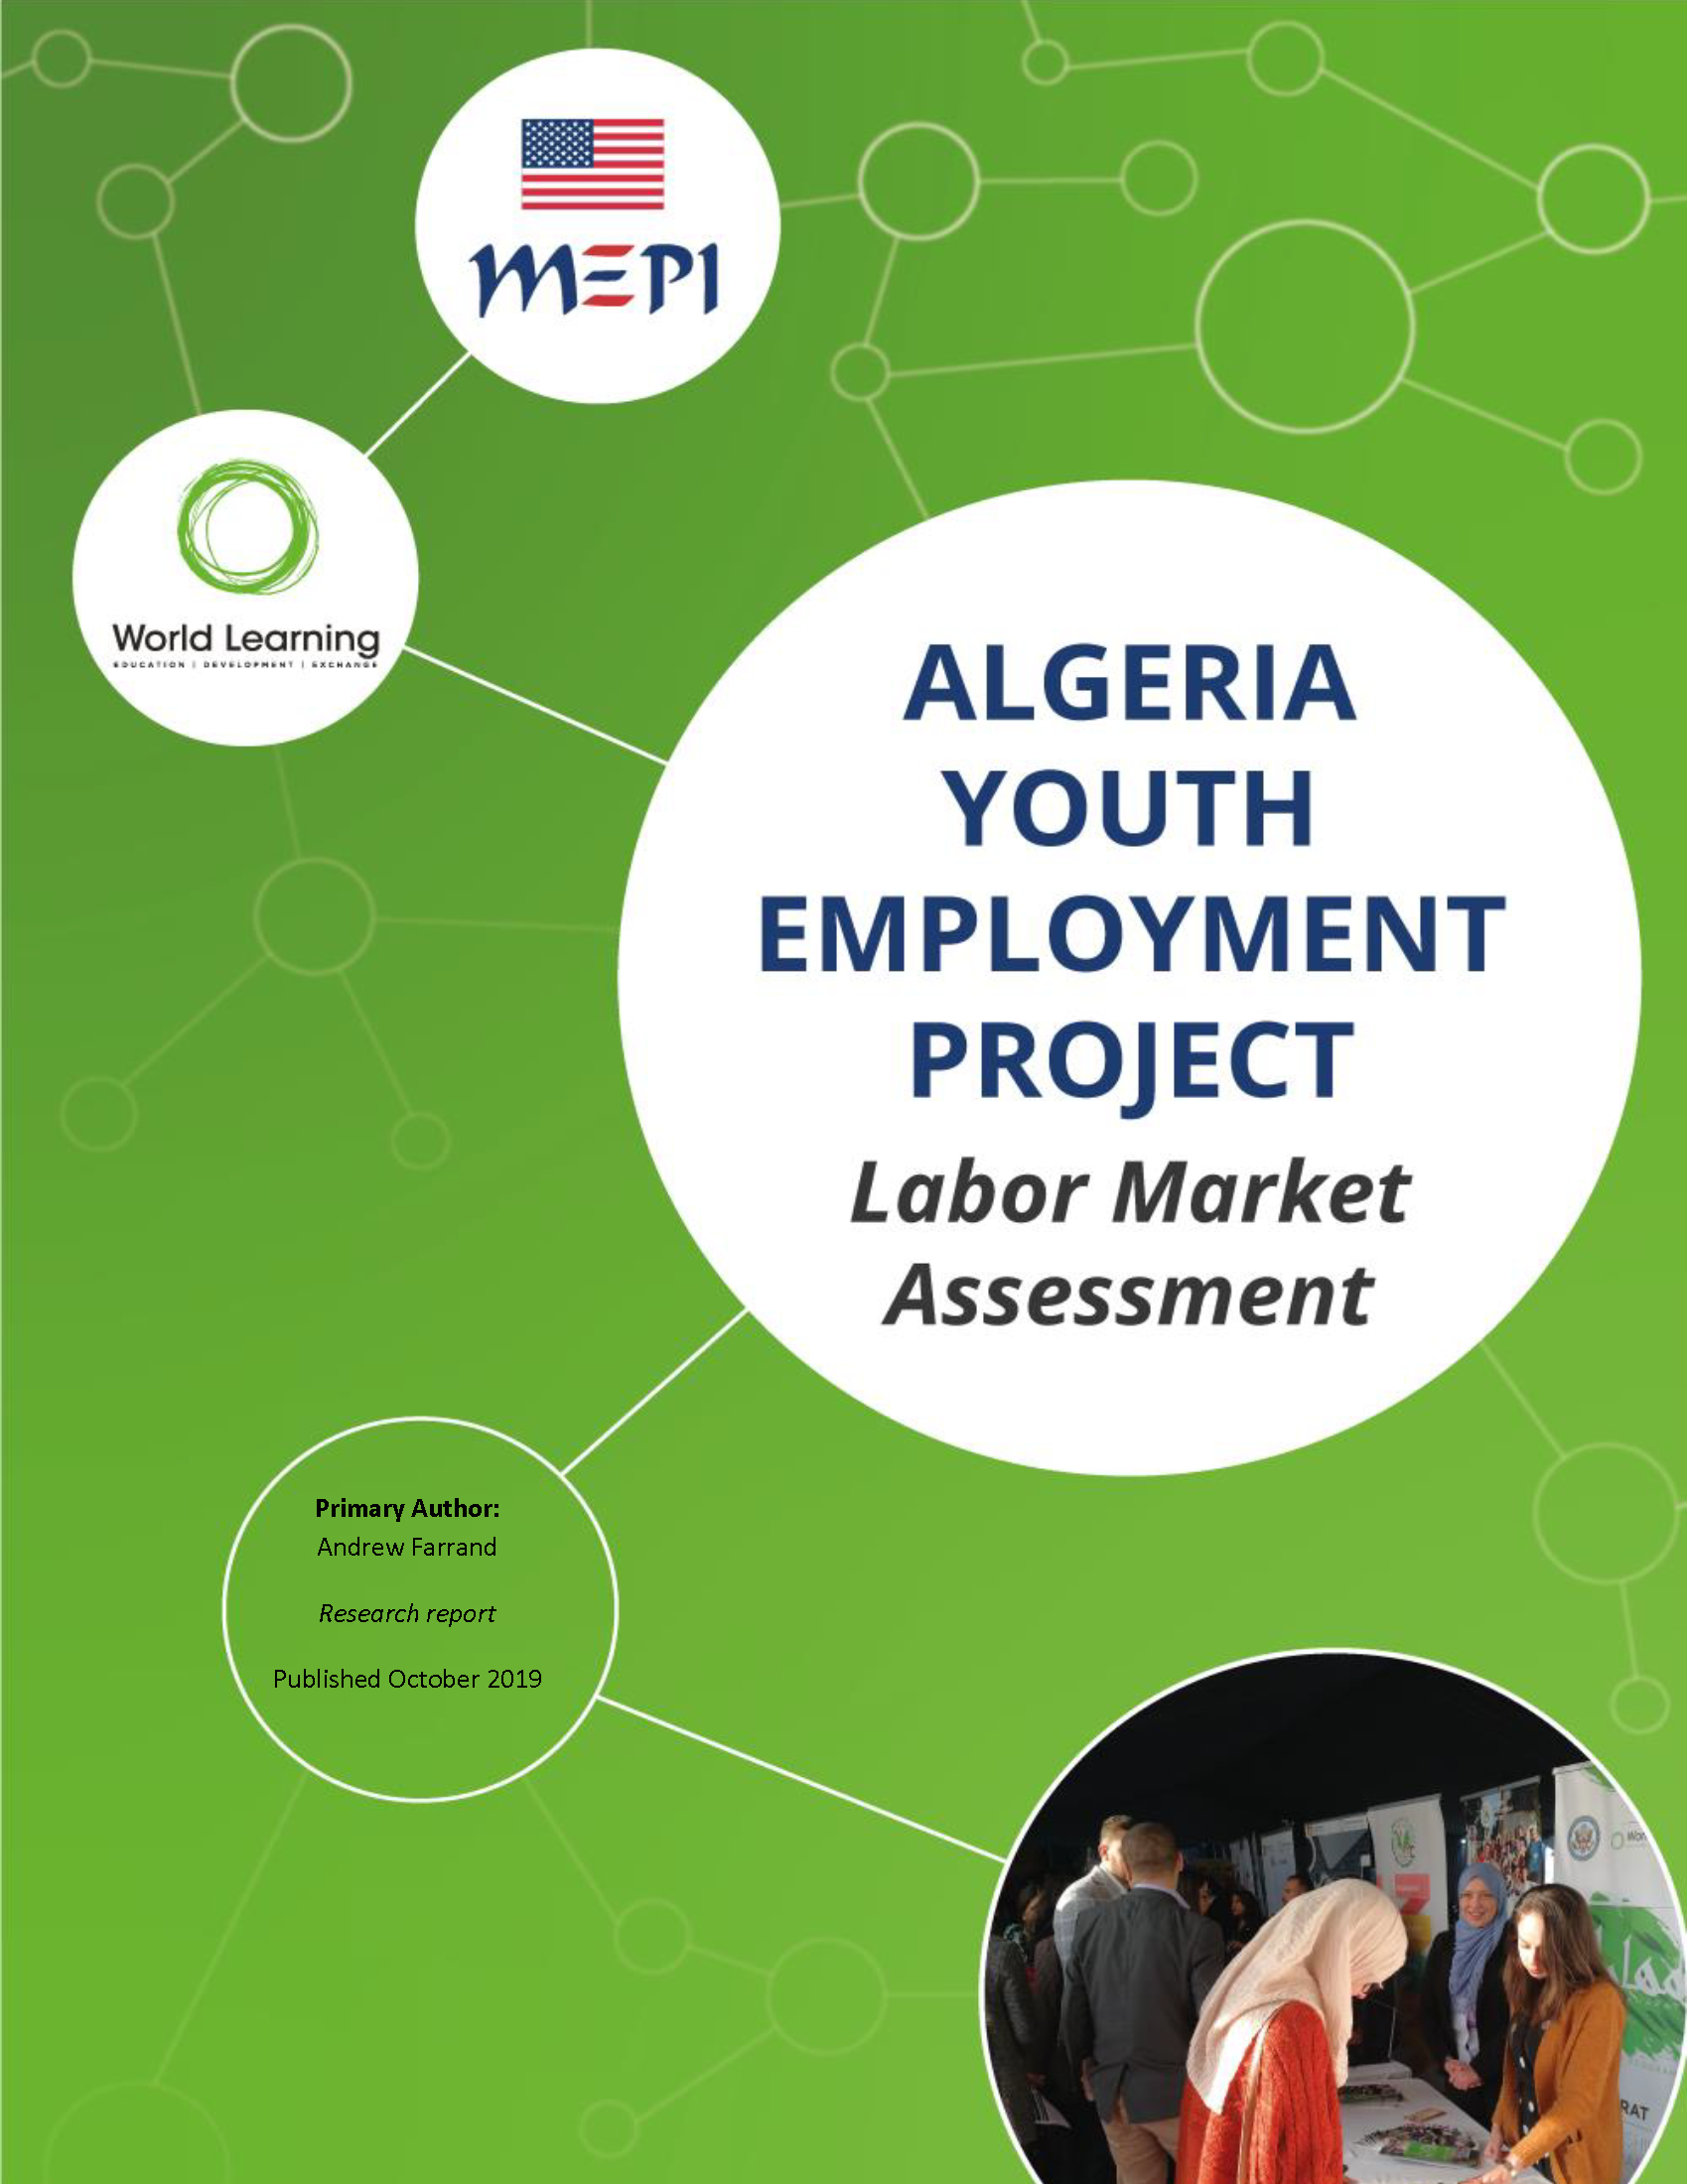 Youth Employment Project Algeria Labor Market Assessments Report